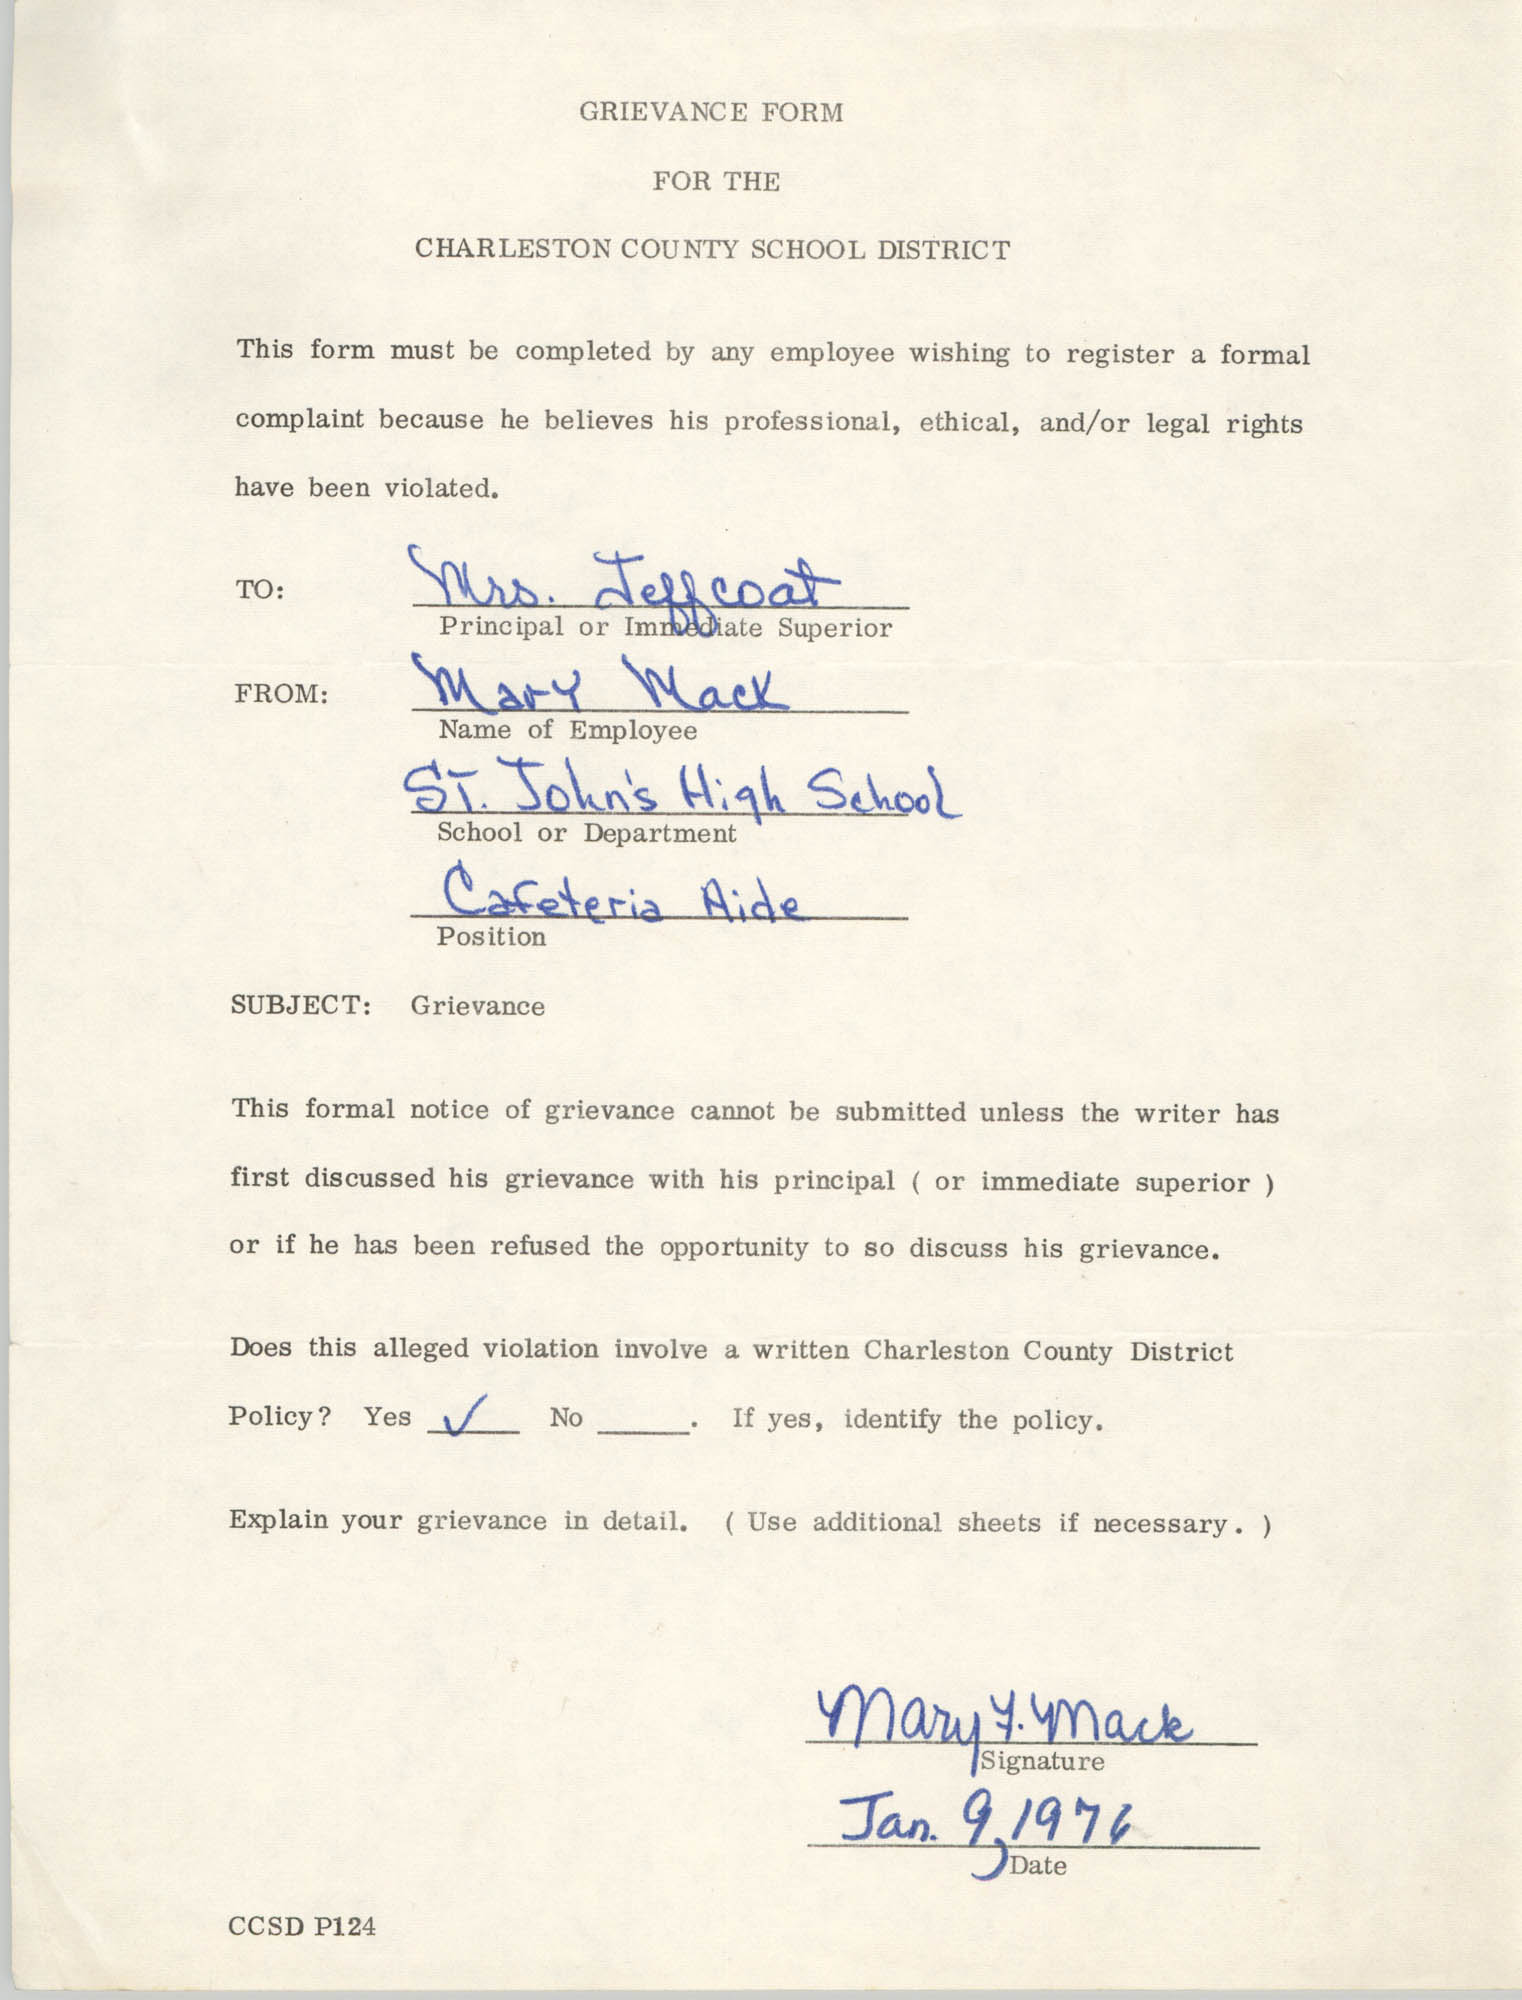 Grievance Form for the Charleston County School District, January 9, 1976